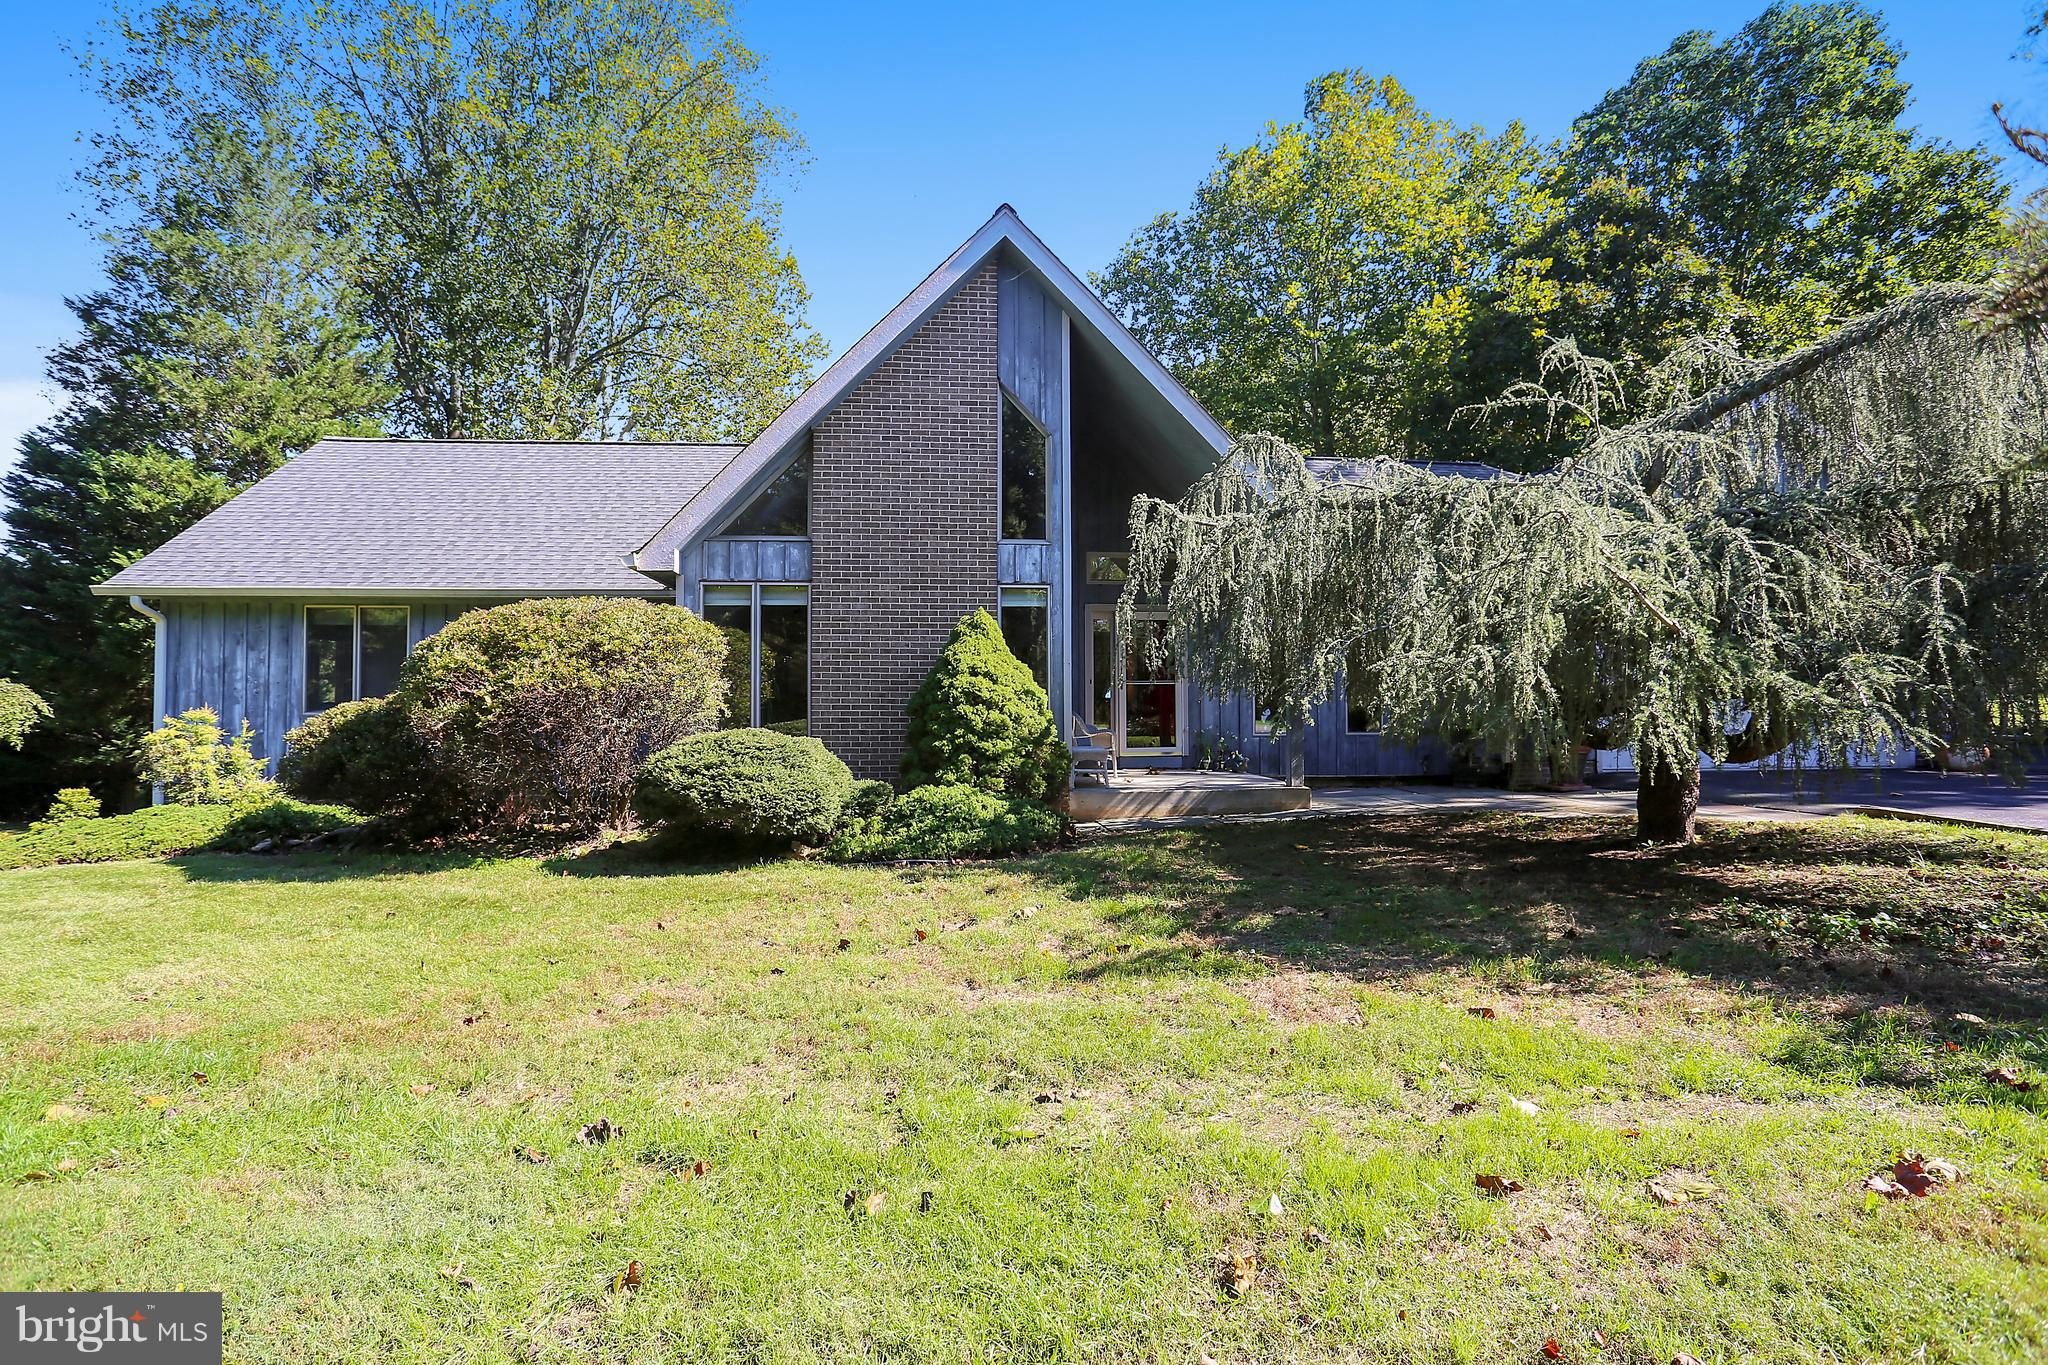 21325 RIDGECROFT DRIVE, BROOKEVILLE, MD 20833